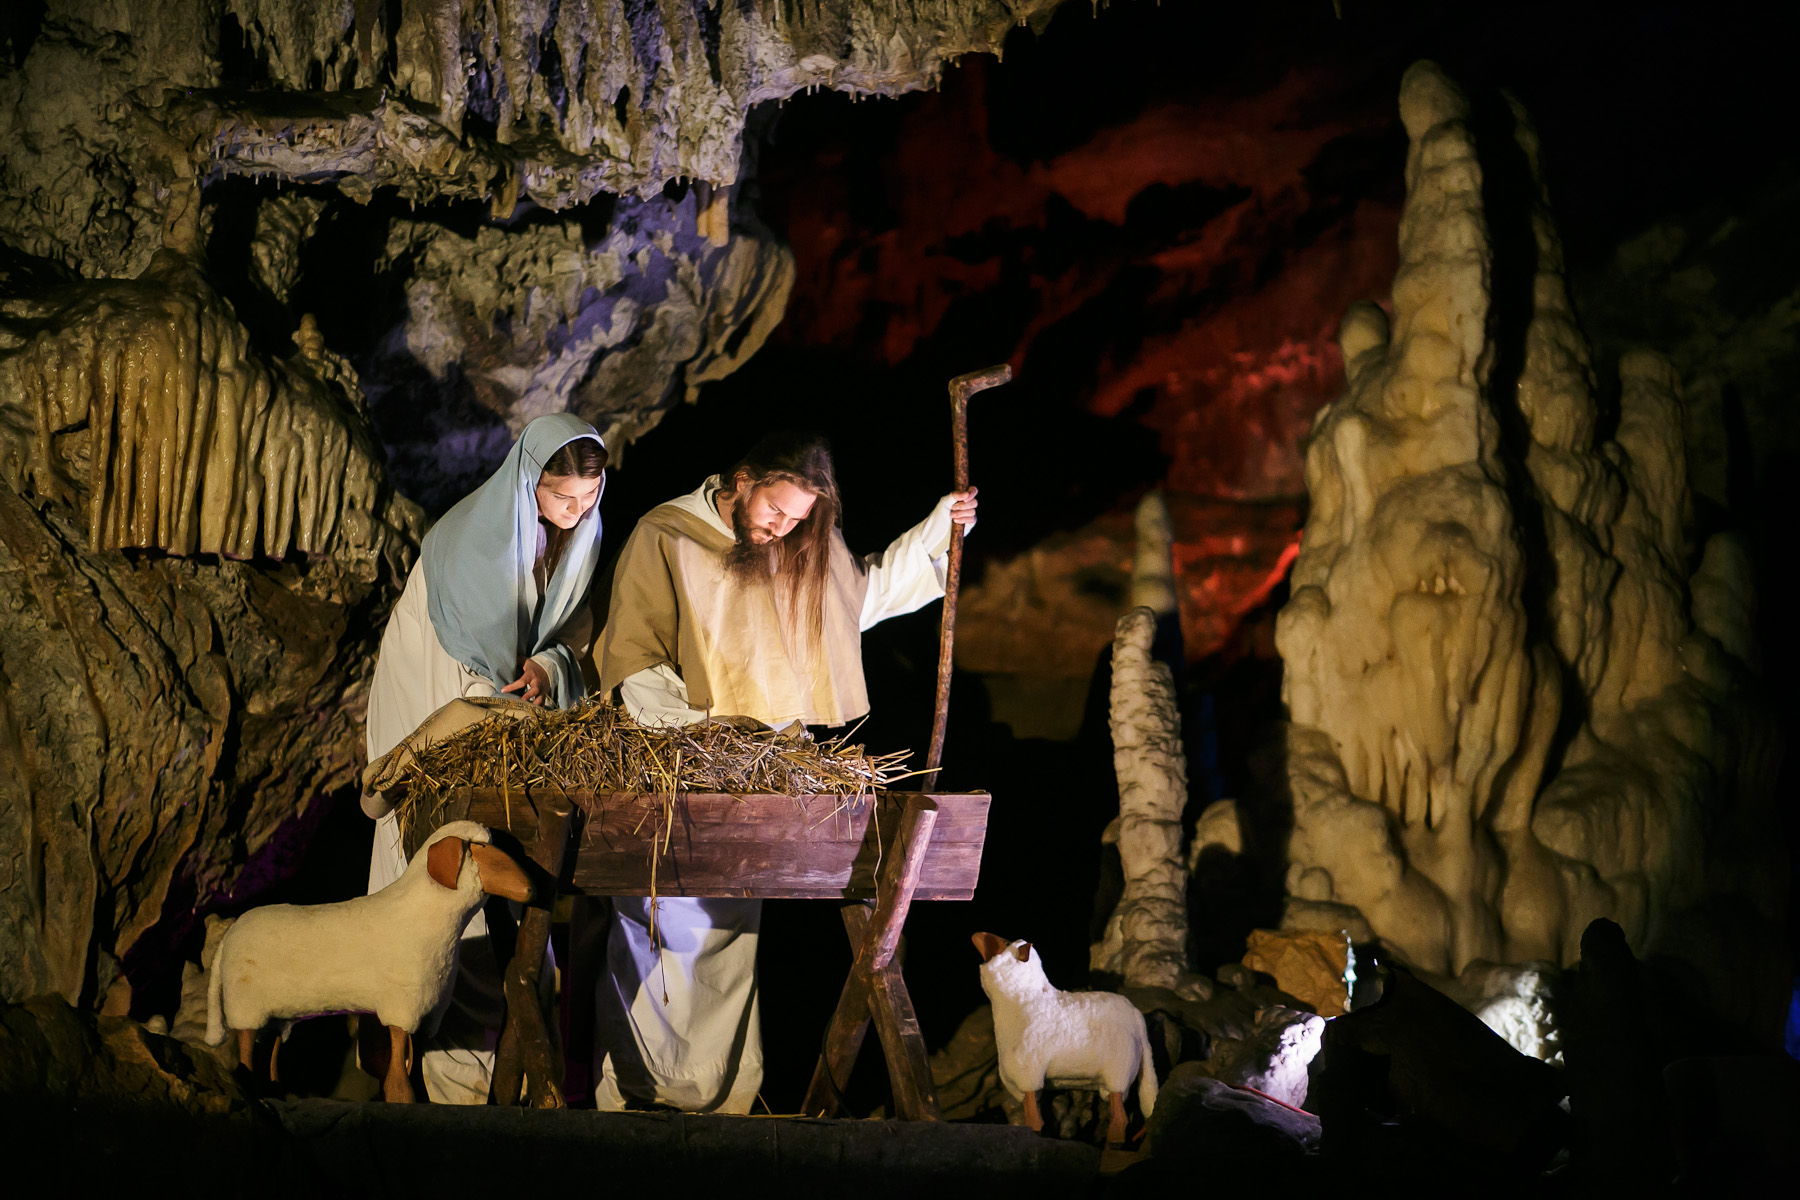 Actors perform as Joseph and Mary during the world's largest live Nativity scene in a cave, staged in the world-famous Postojna Cave in Slovenia, Dec. 25, 2015.